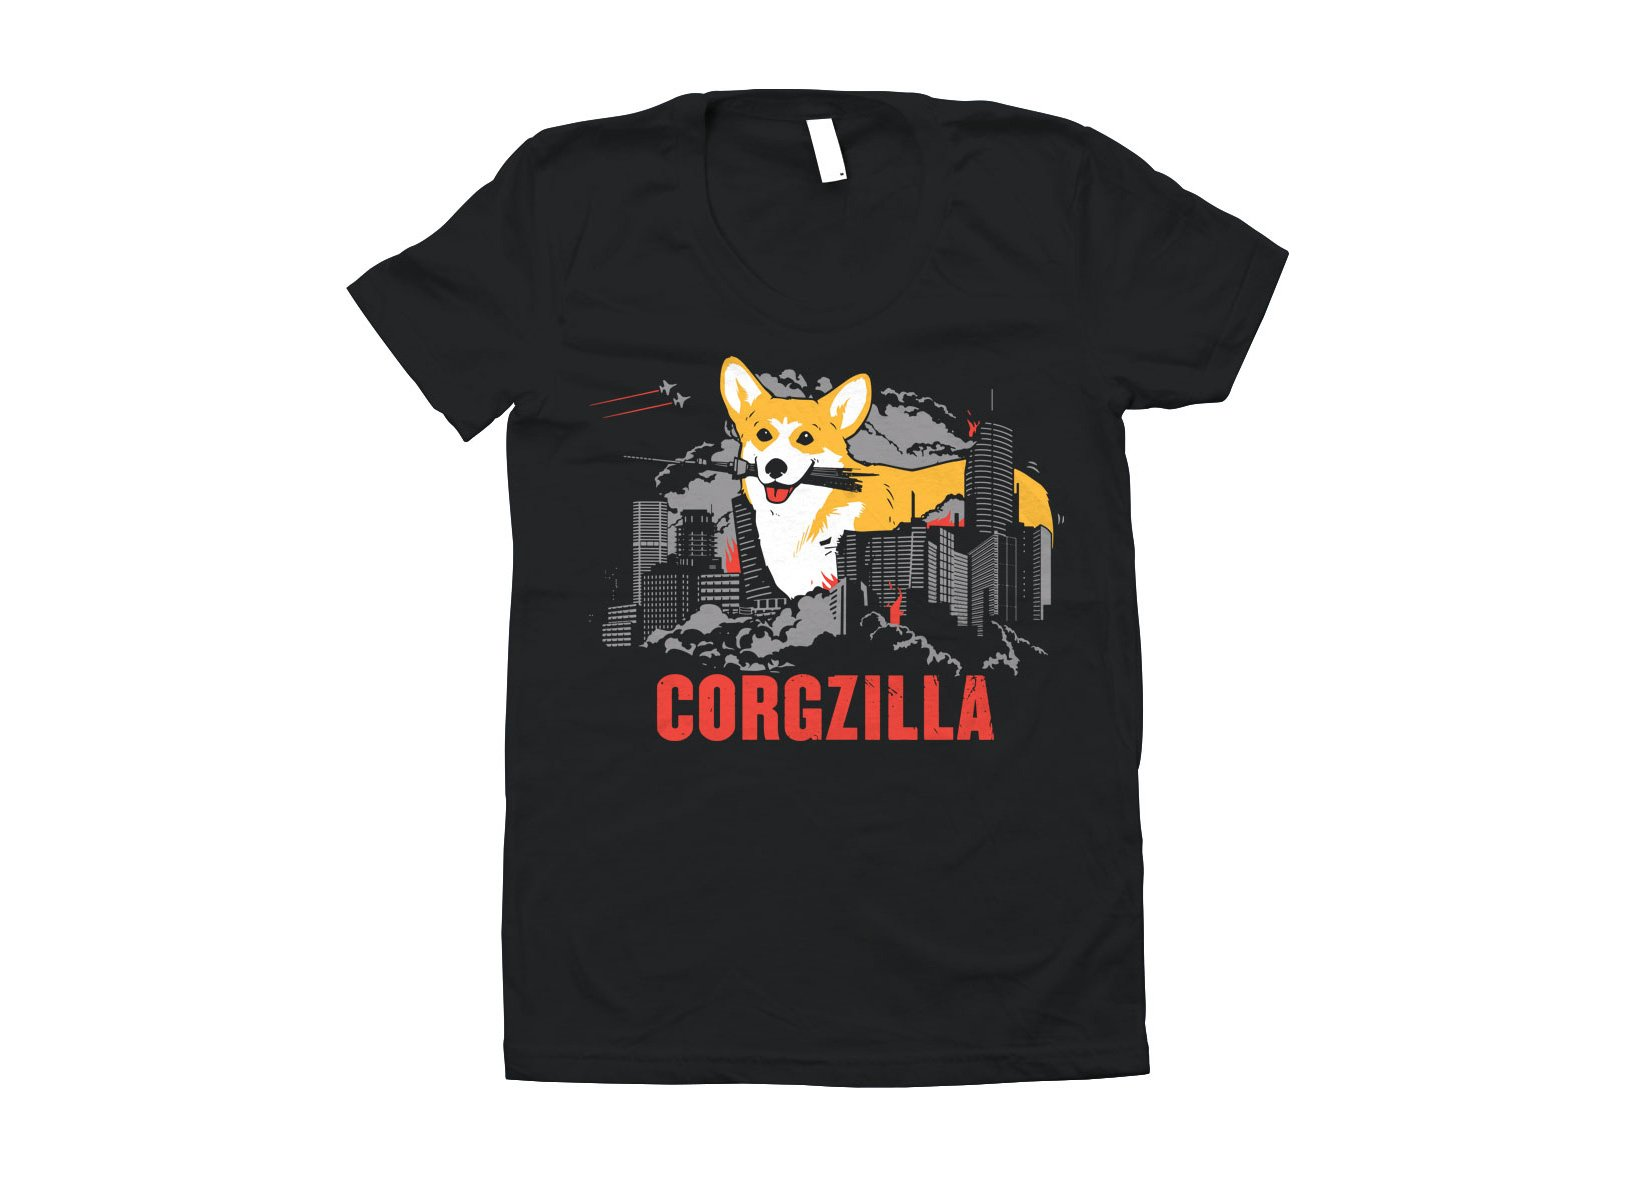 Corgzilla on Juniors T-Shirt